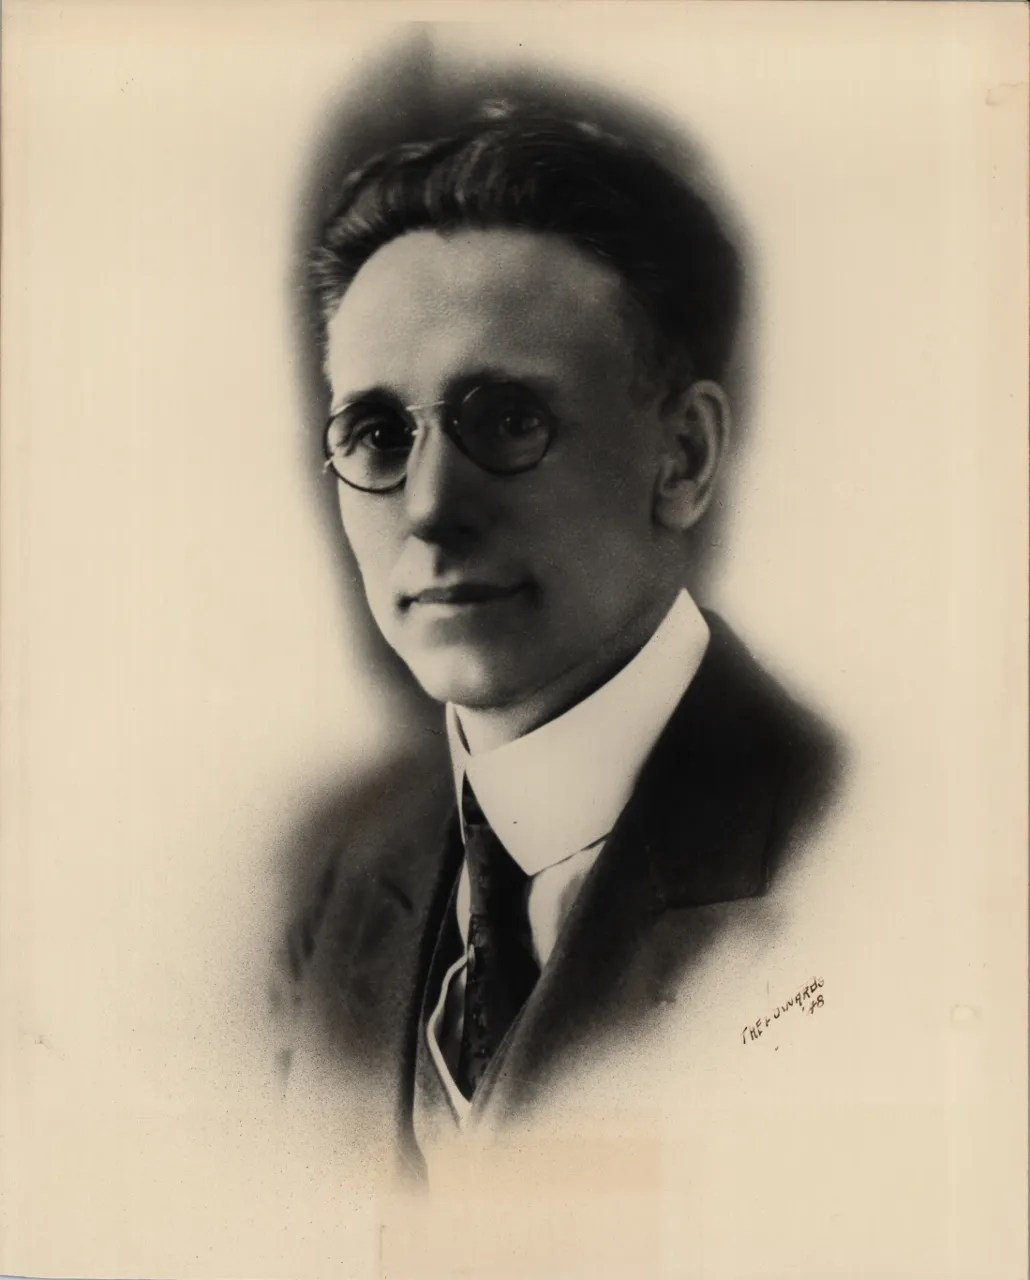 Thaddeus Evans was mayor of Tulsa from May 4, 1920 to May 2, 1922, and opposed efforts to provide reparations to Black victims of the 1921 massacre.